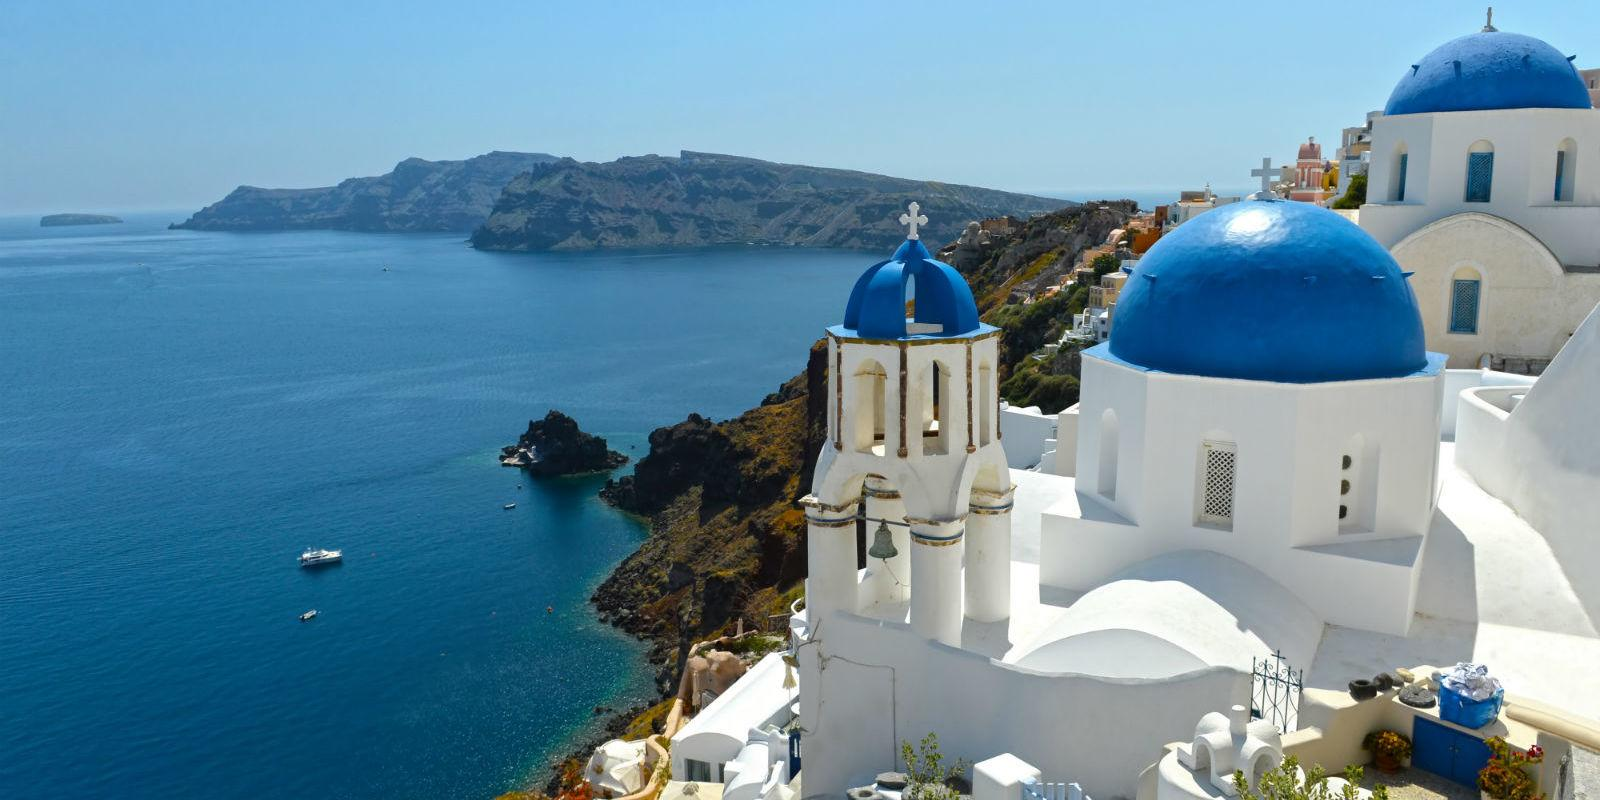 Cyclades 1 - From Athens to Santorini